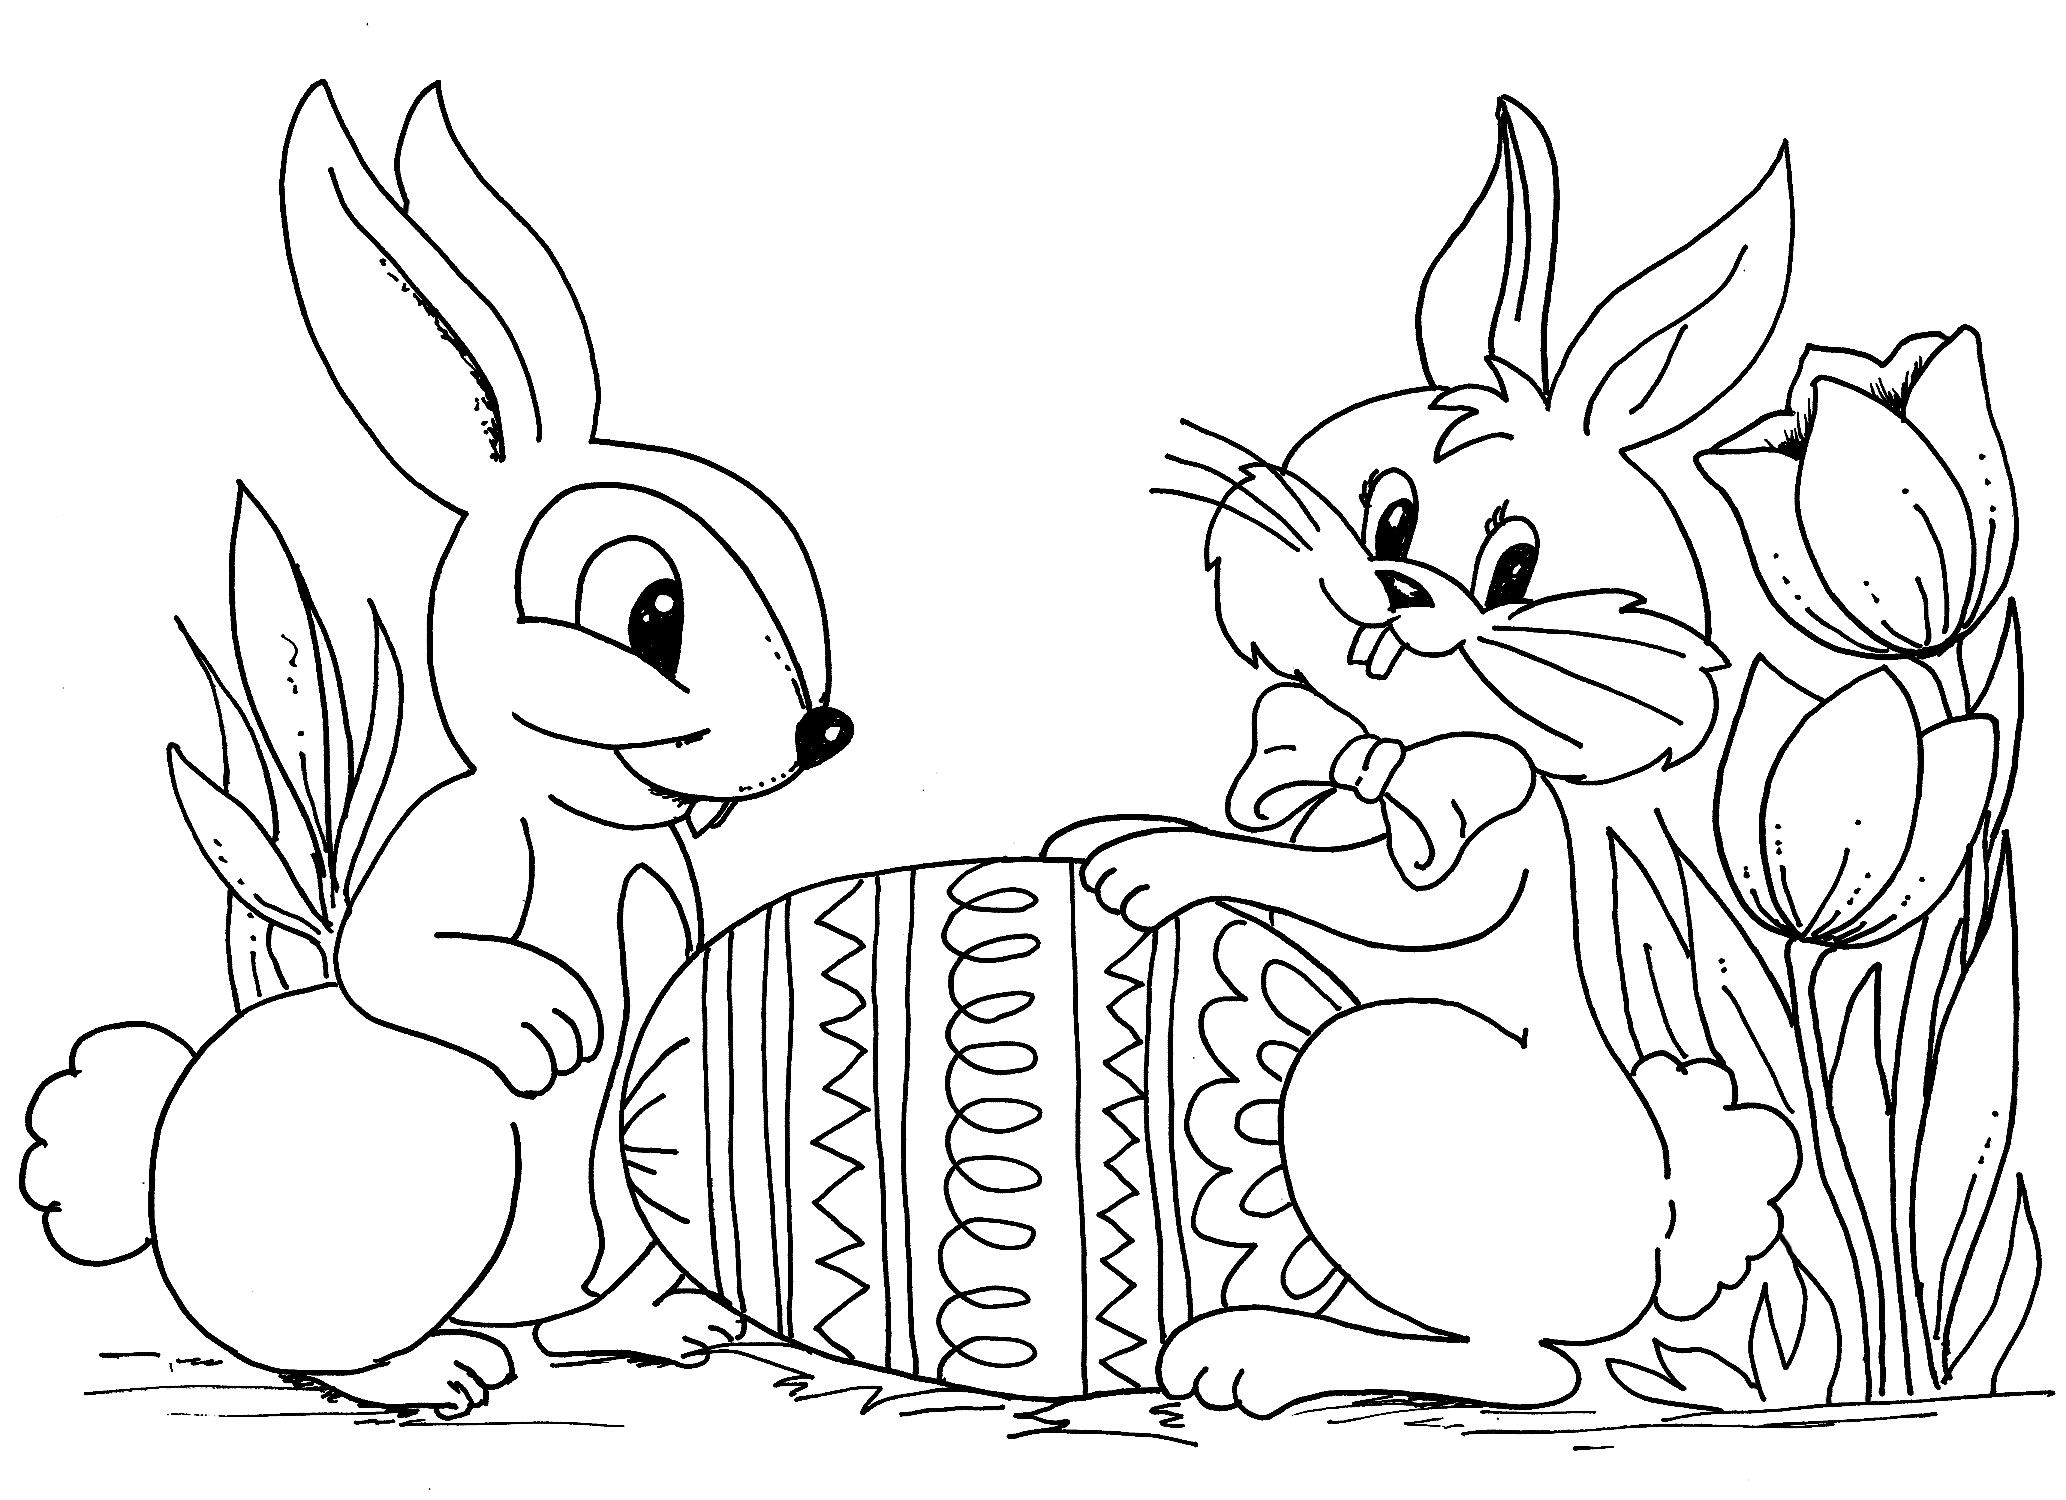 Mandala coloring pages easter - Here We Are Providing You Easter Images To Colour For Kids Easter Coloring Pages Best Easter Images For Kids Easter Coloring Pages For Kids Easter Images